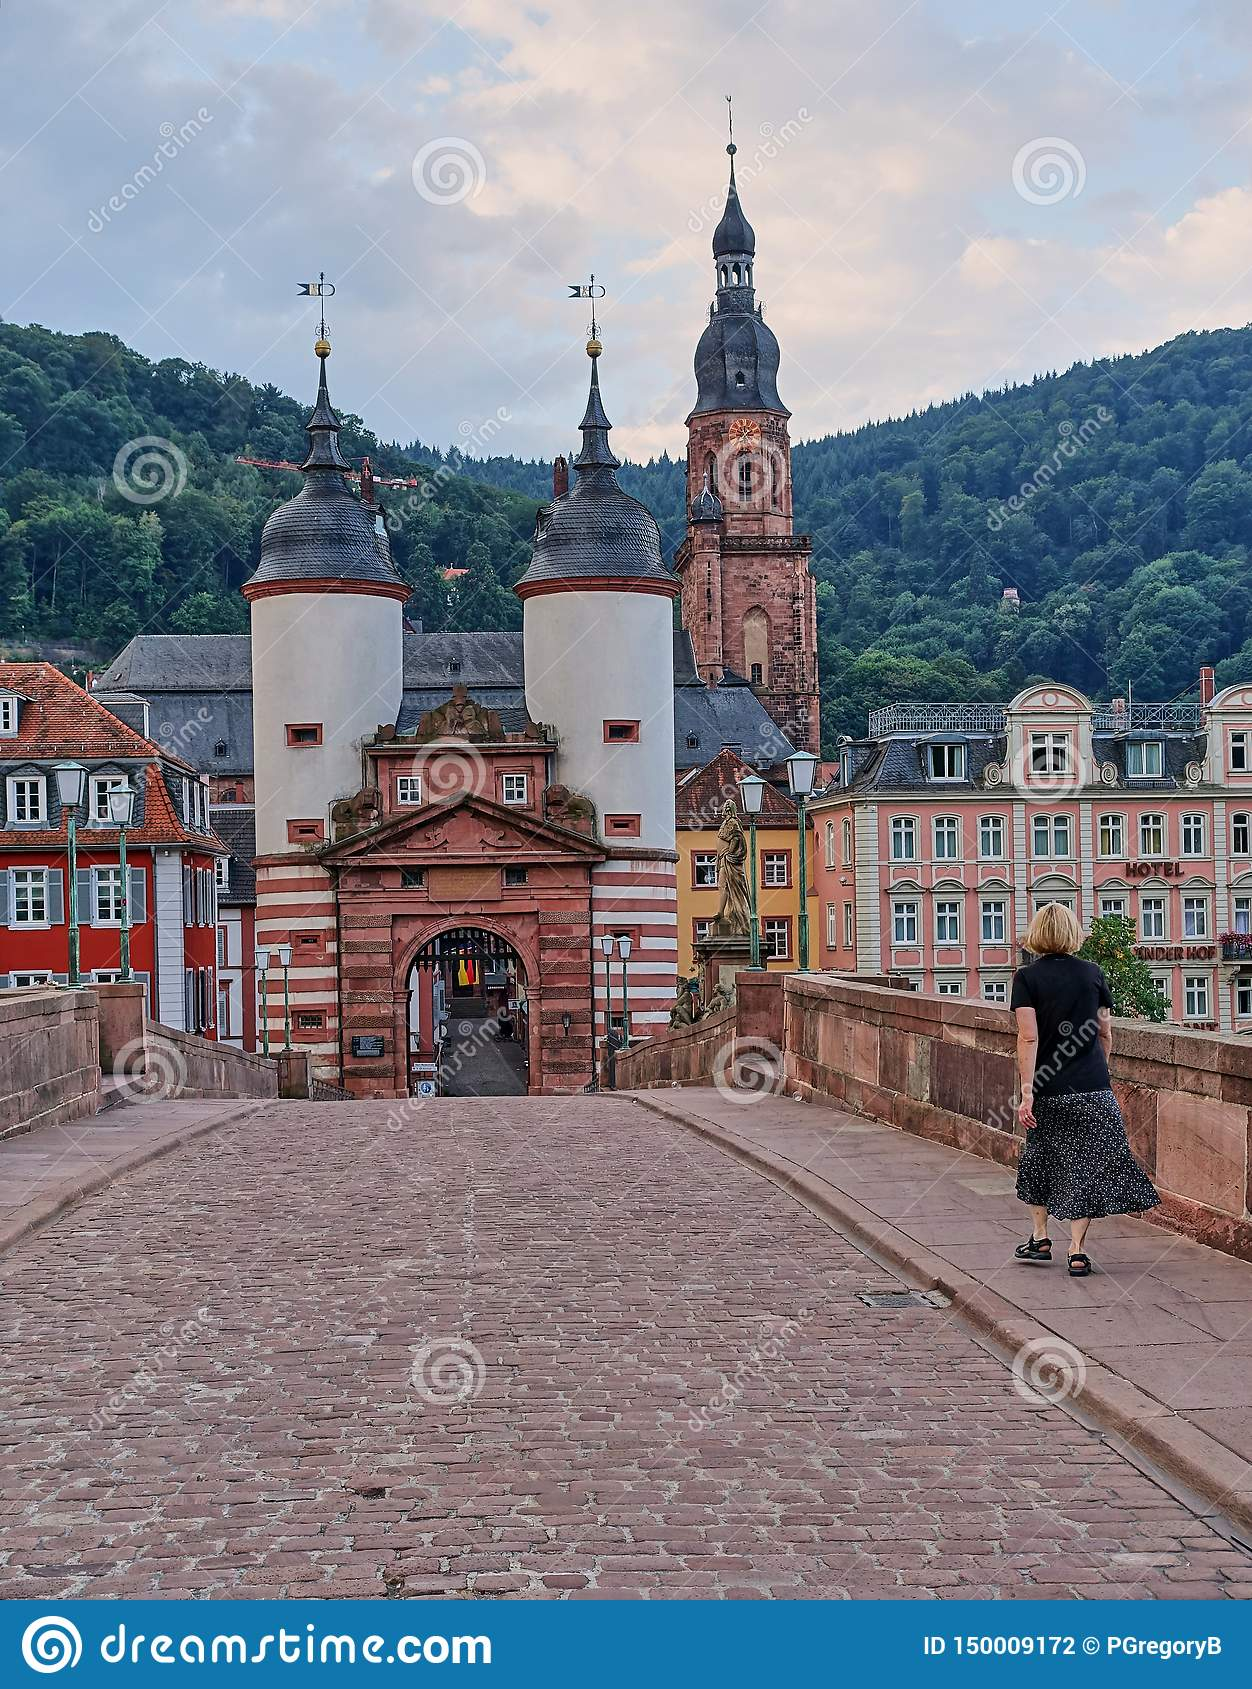 Woman Walks across Old Bridge in destination town of Heidelberg, Germany